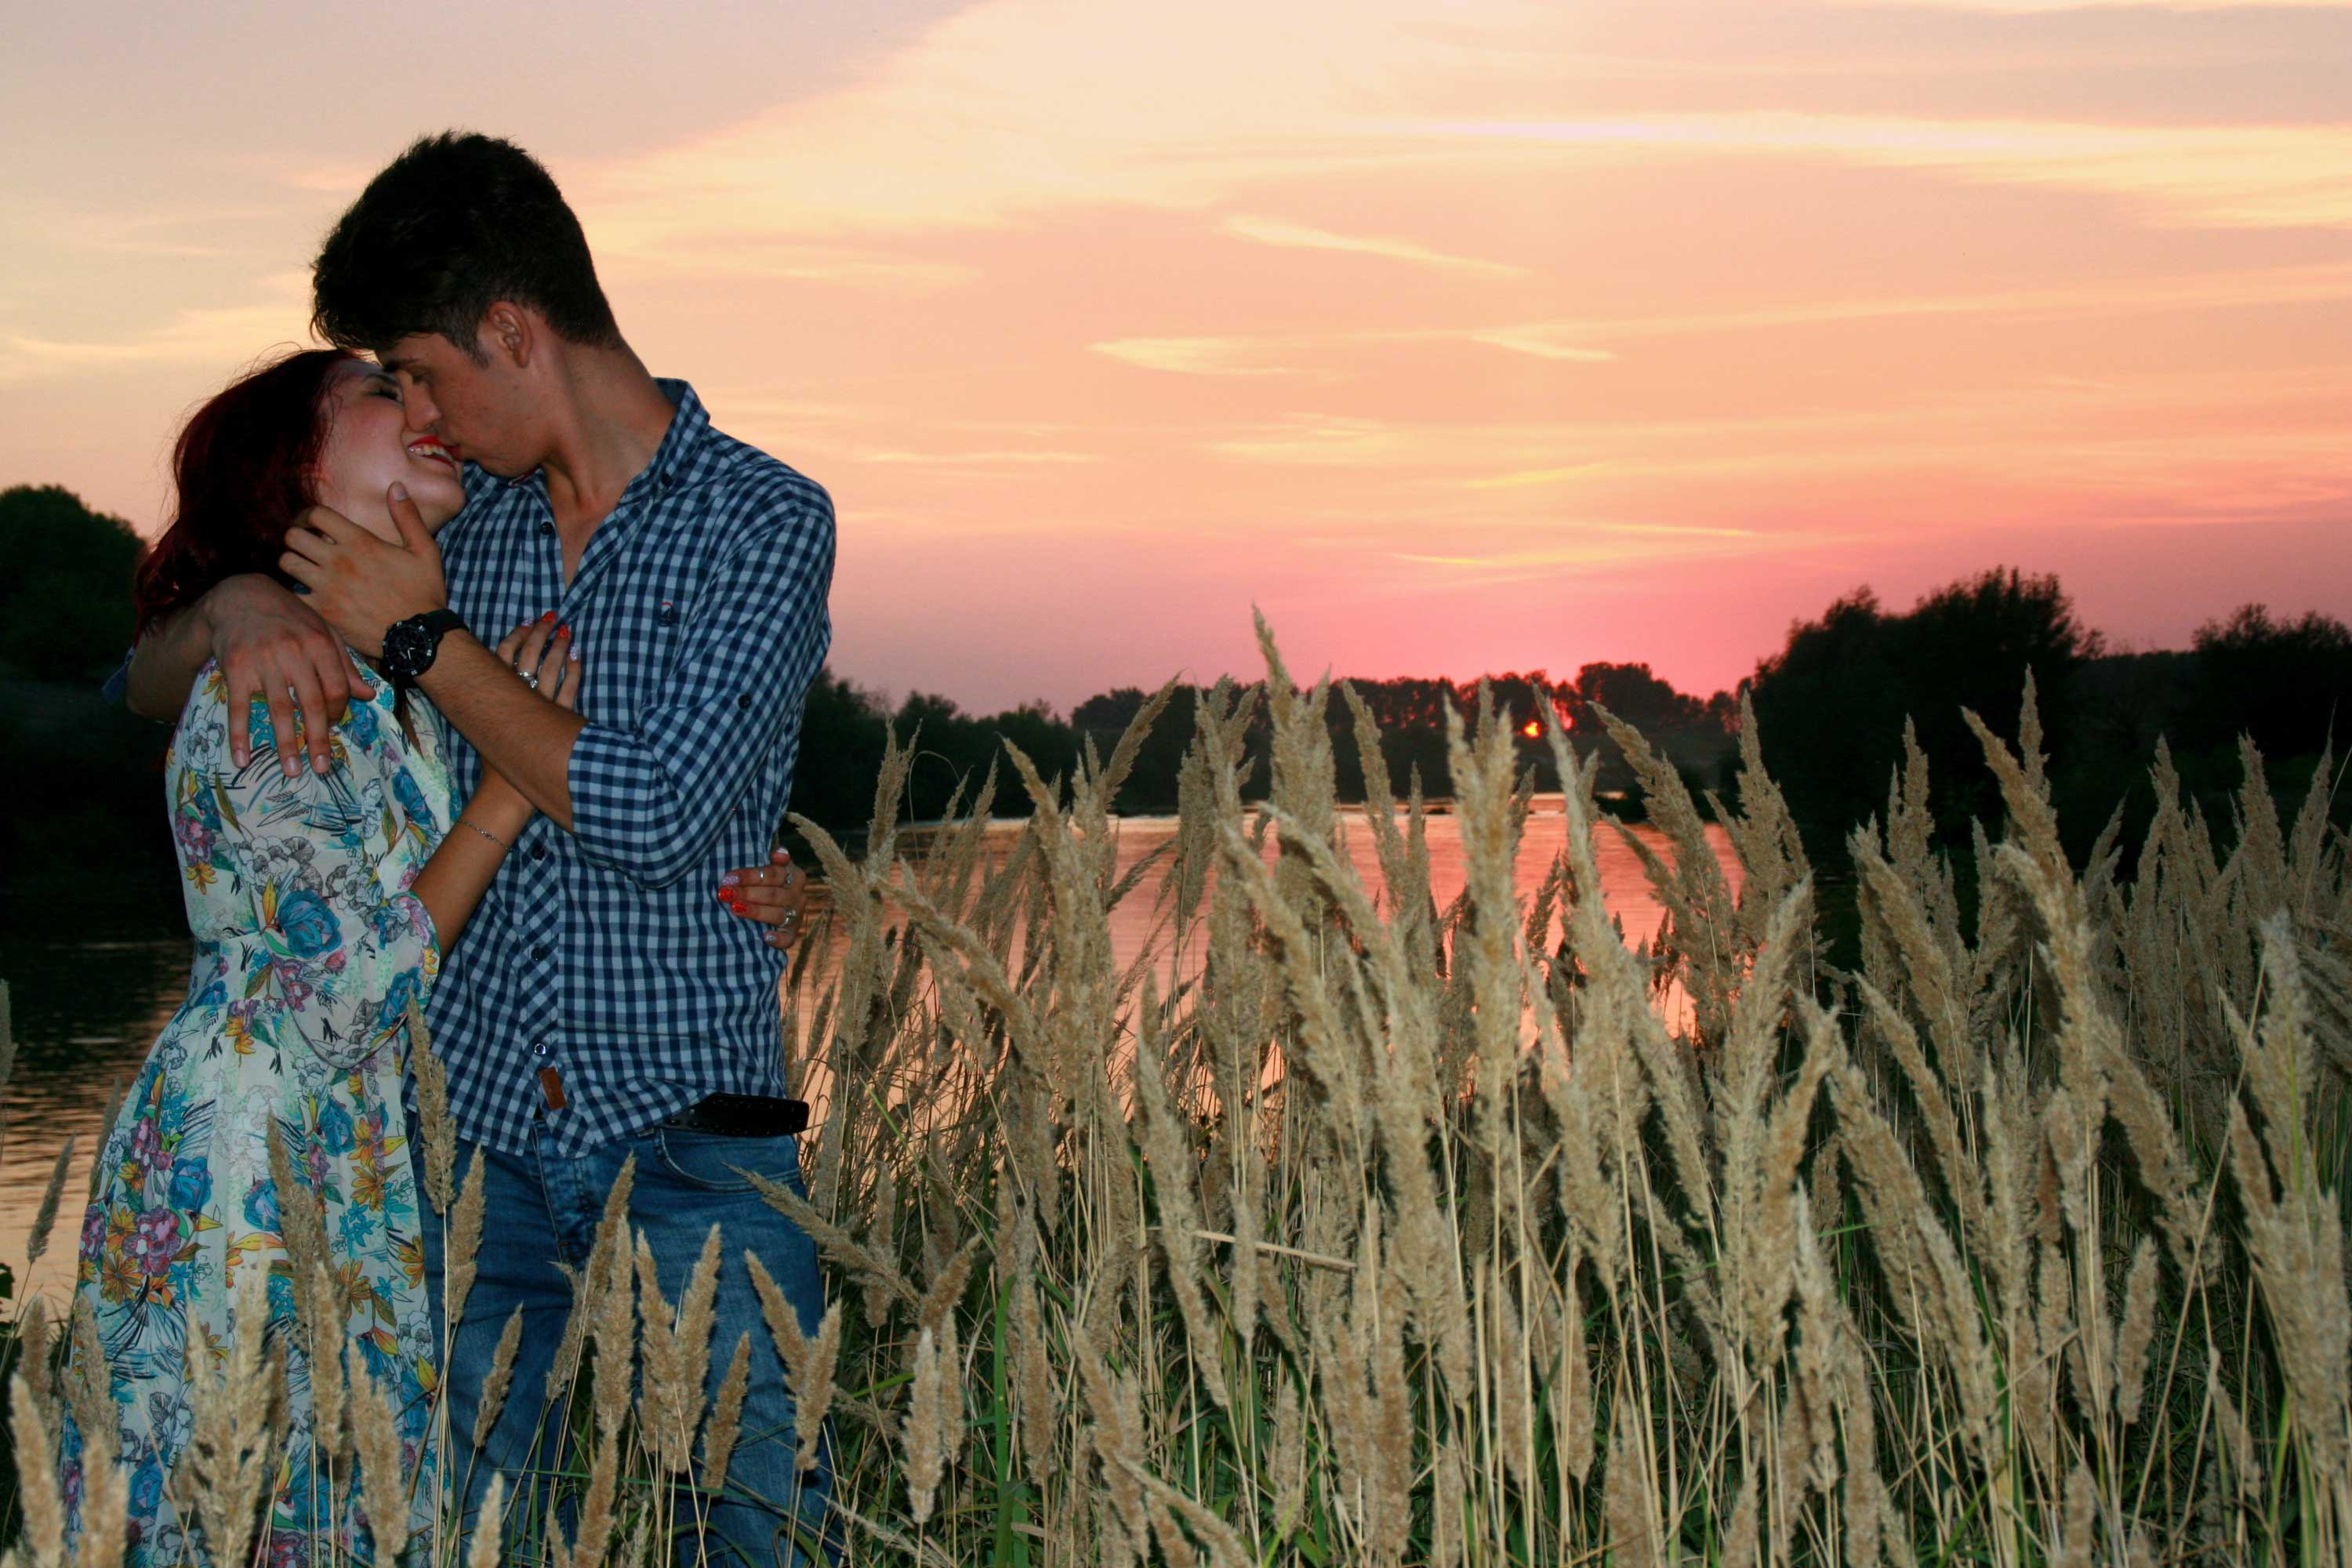 Image Gallery Of Cute Couple Hug Wallpaper For Mobile